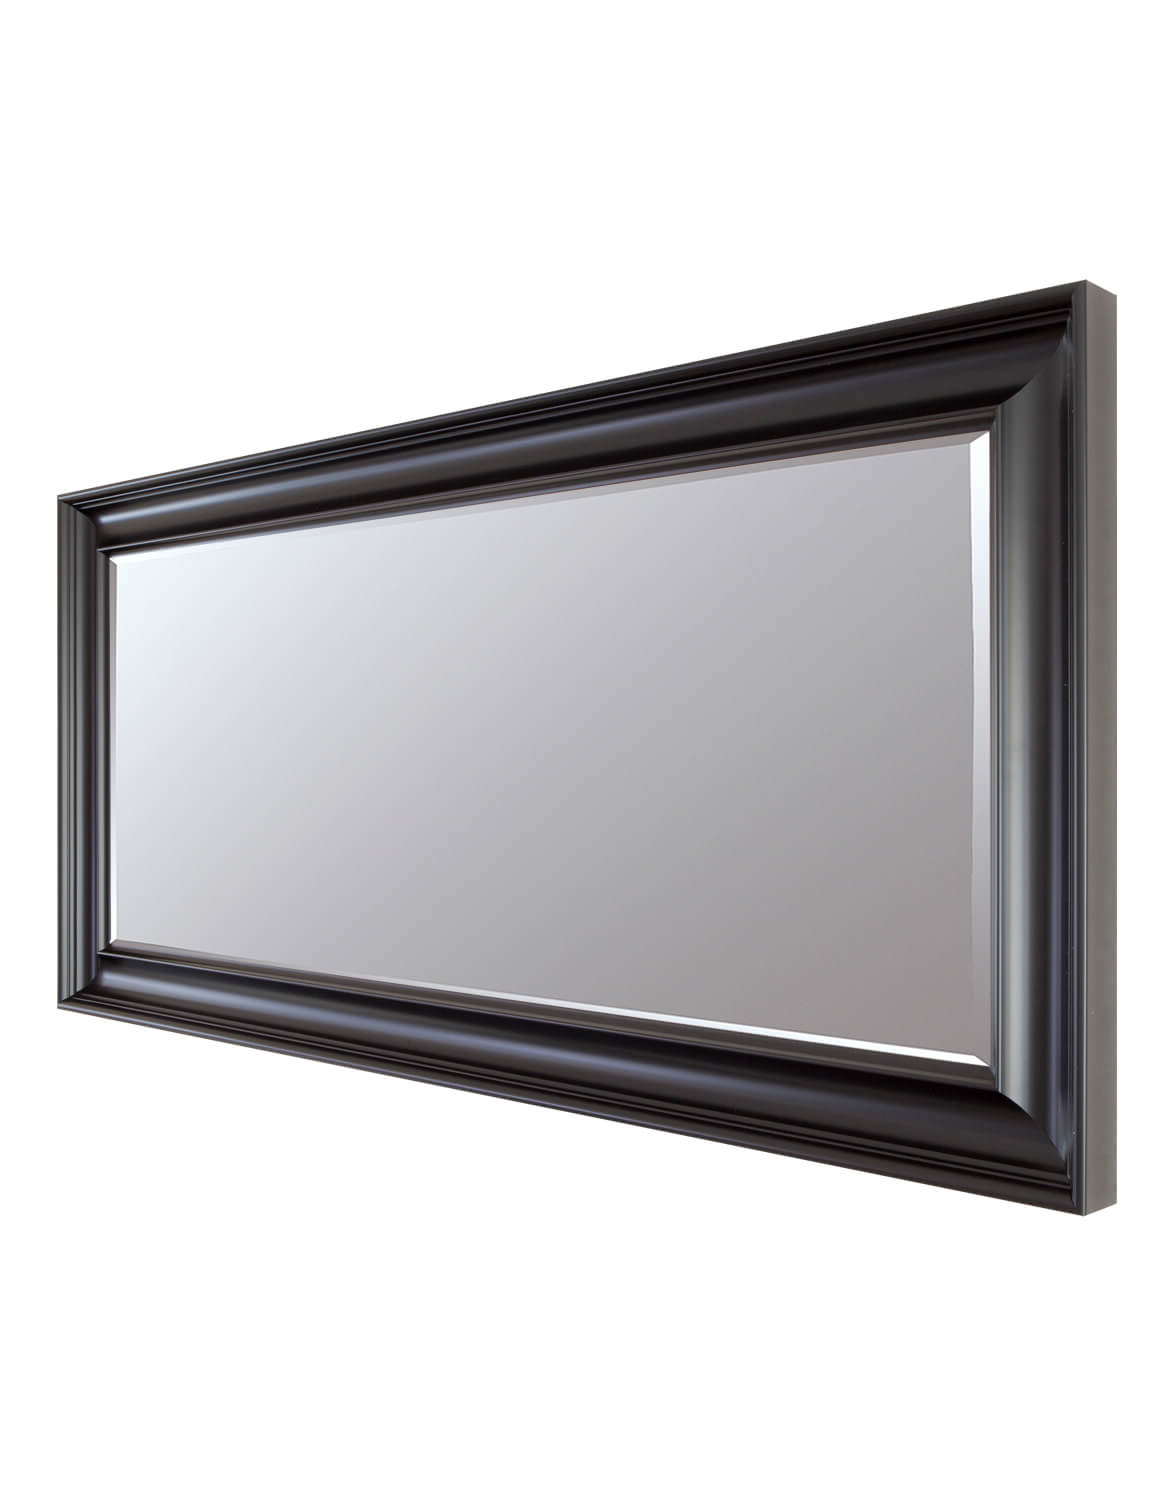 Long Black Wall Mirrors Regarding Most Popular Luxe Black 77X138Cm Long Wall Mirror (Gallery 13 of 20)